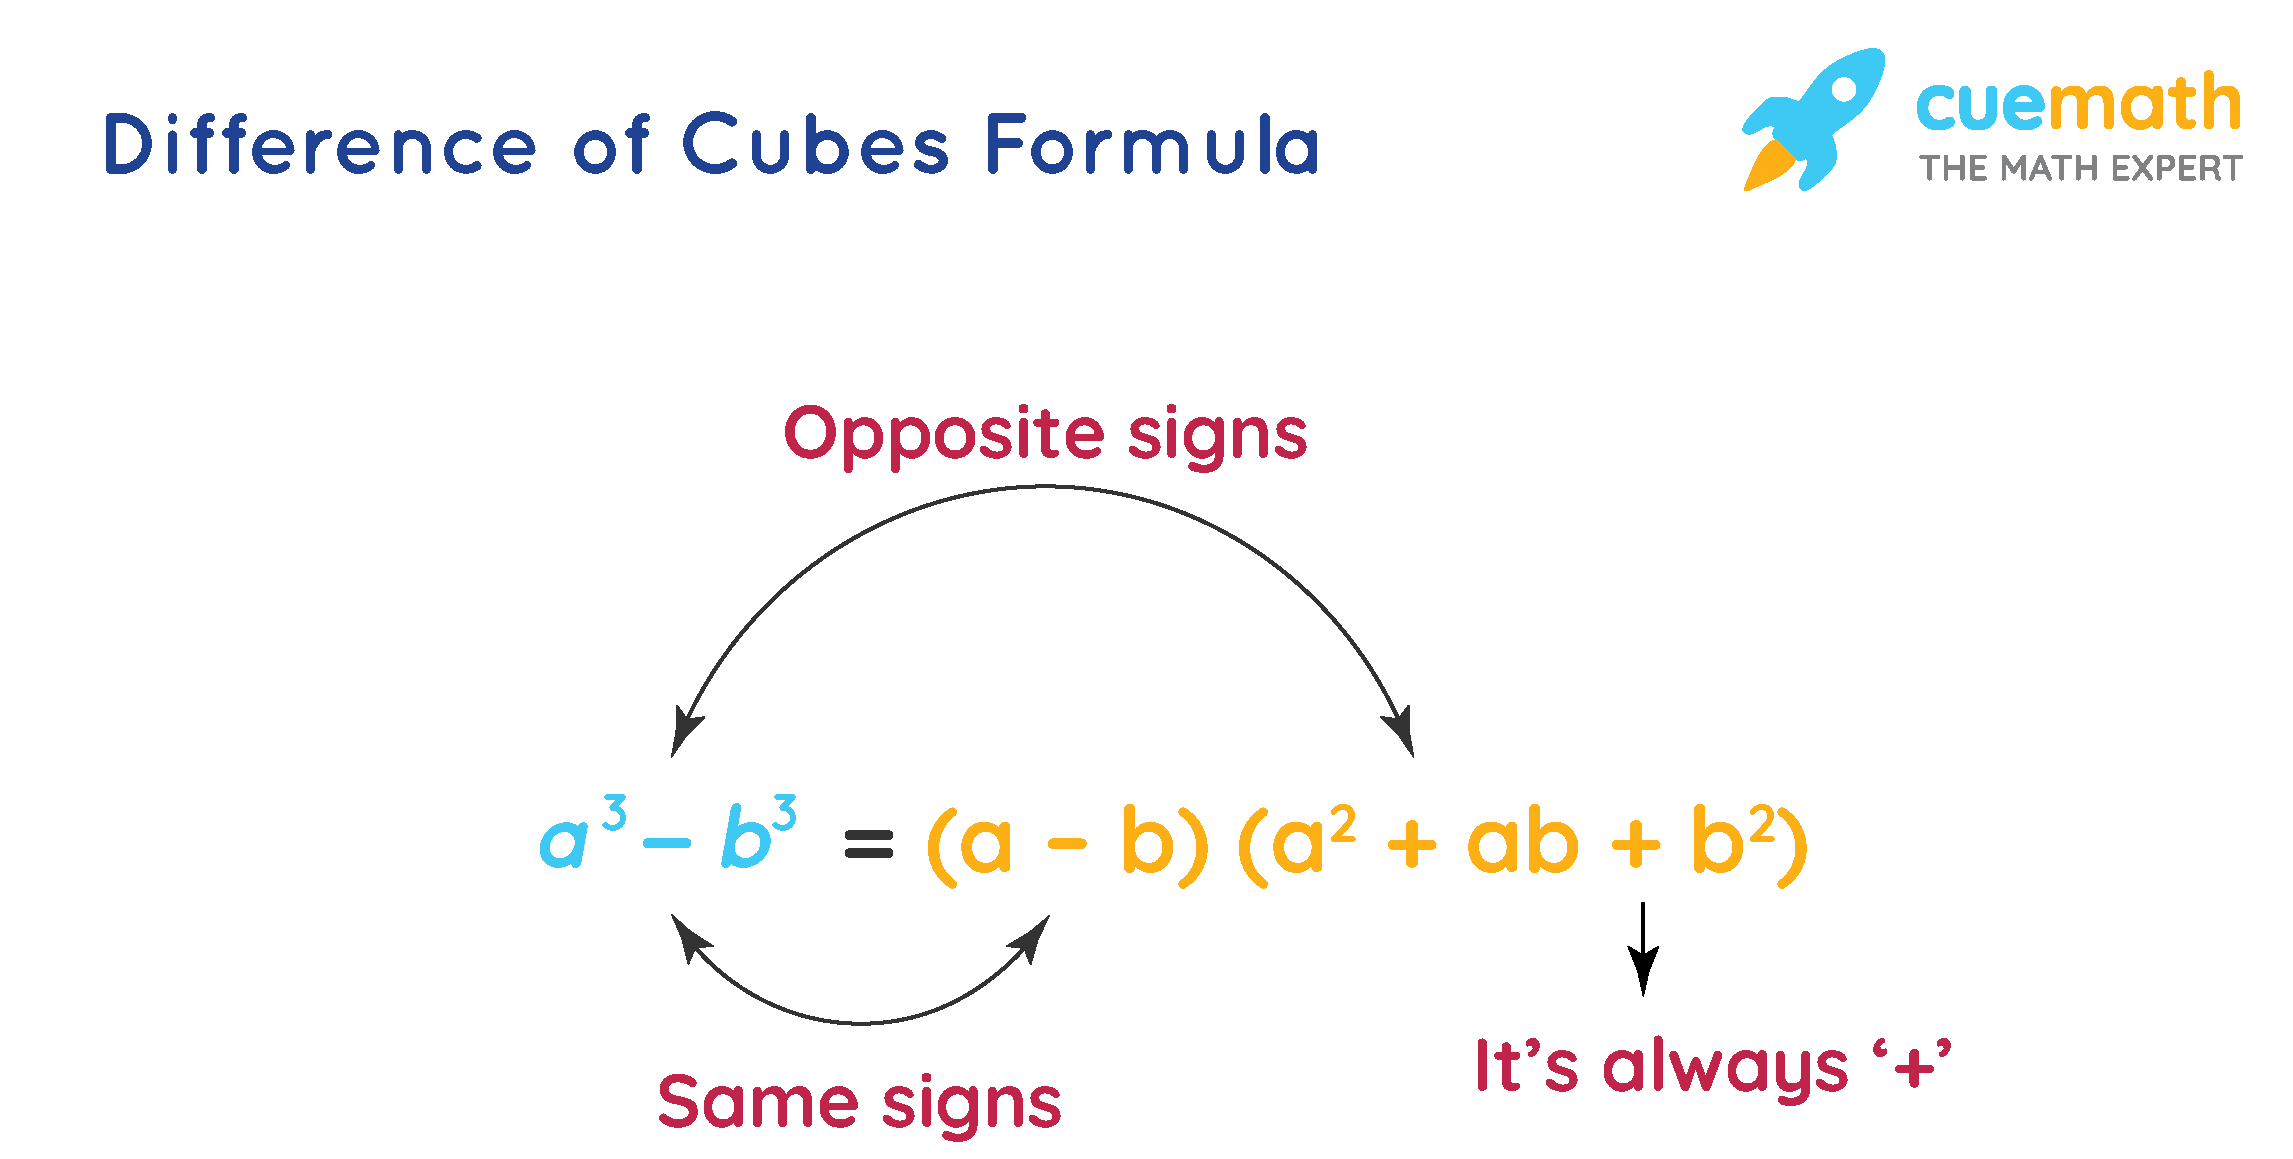 trick to remember difference of cubes formula (or) a^3 - b^3 formula